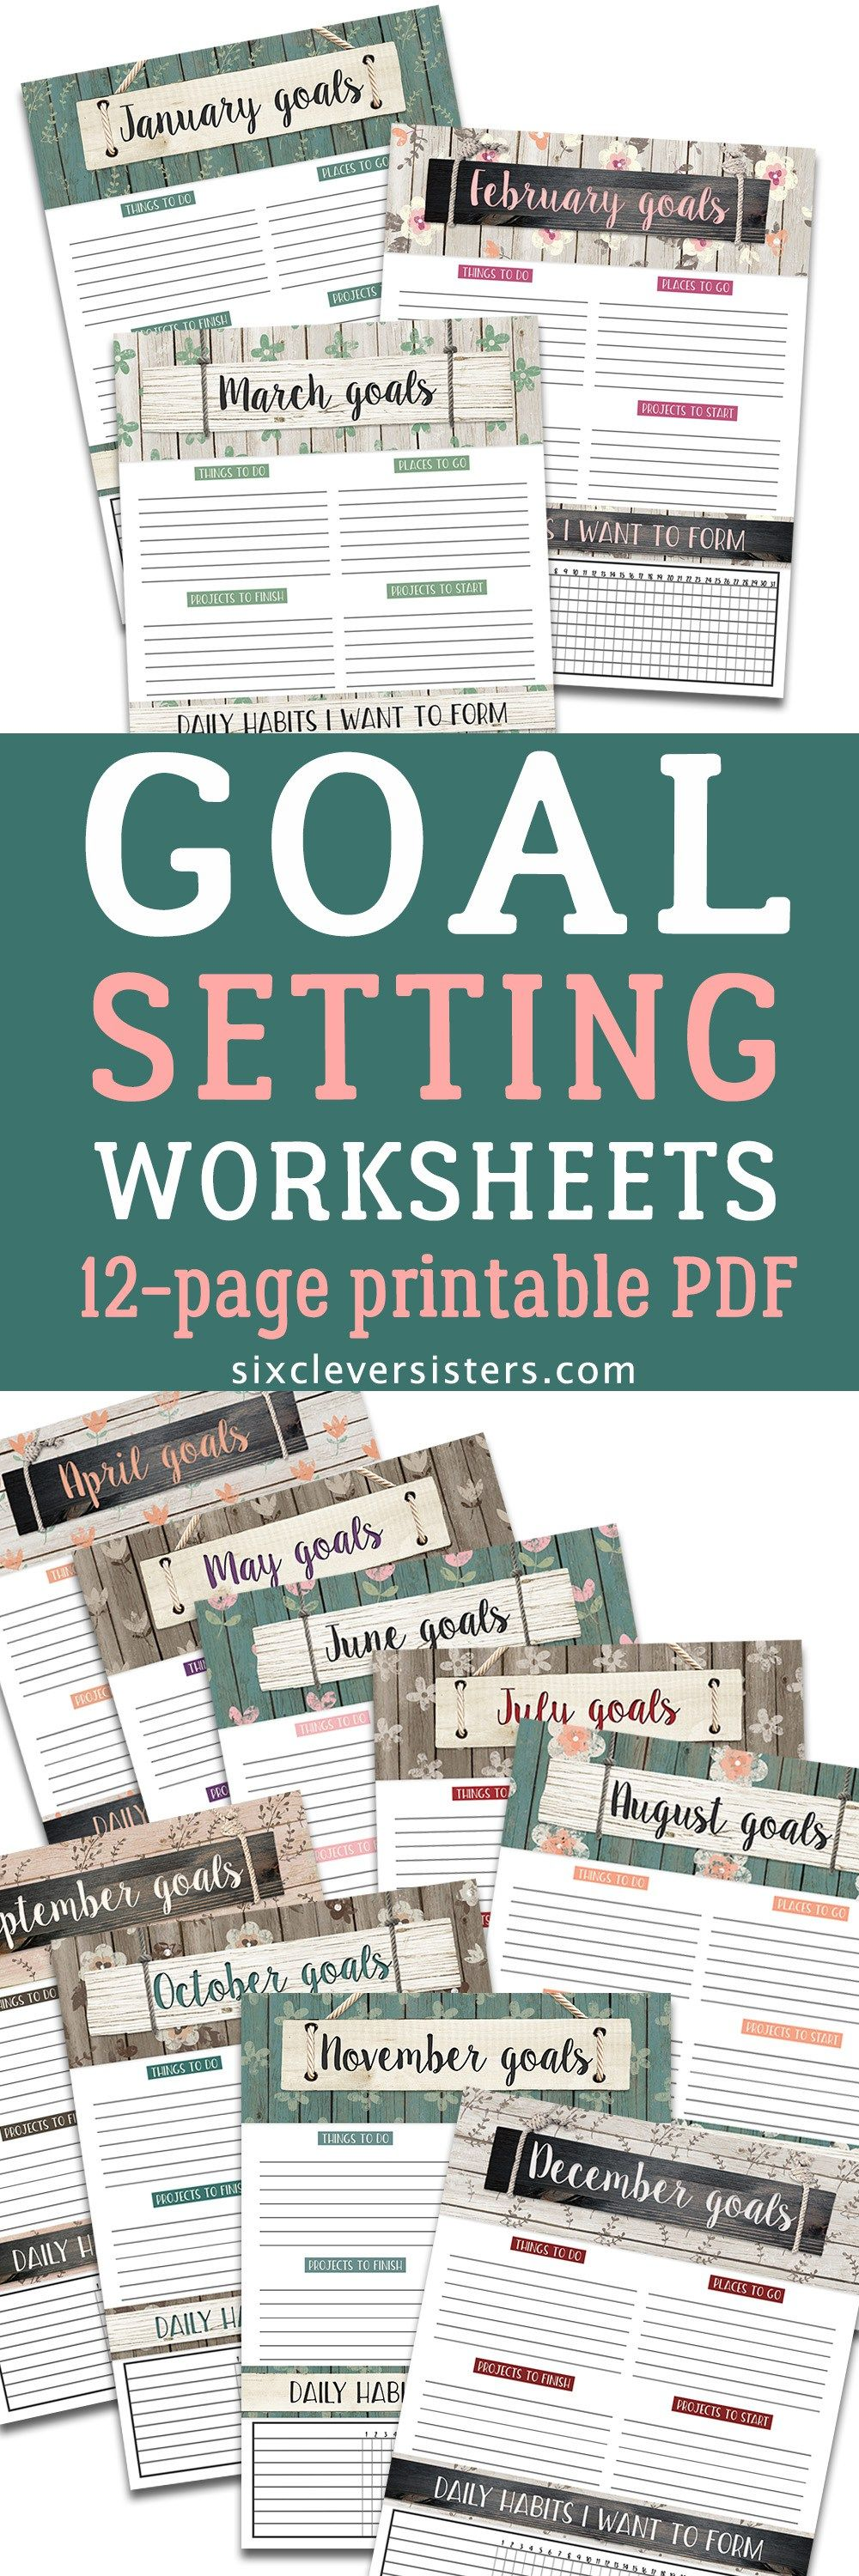 Monthly Goal Setting Worksheets for 2018 | Goal setting worksheet ...